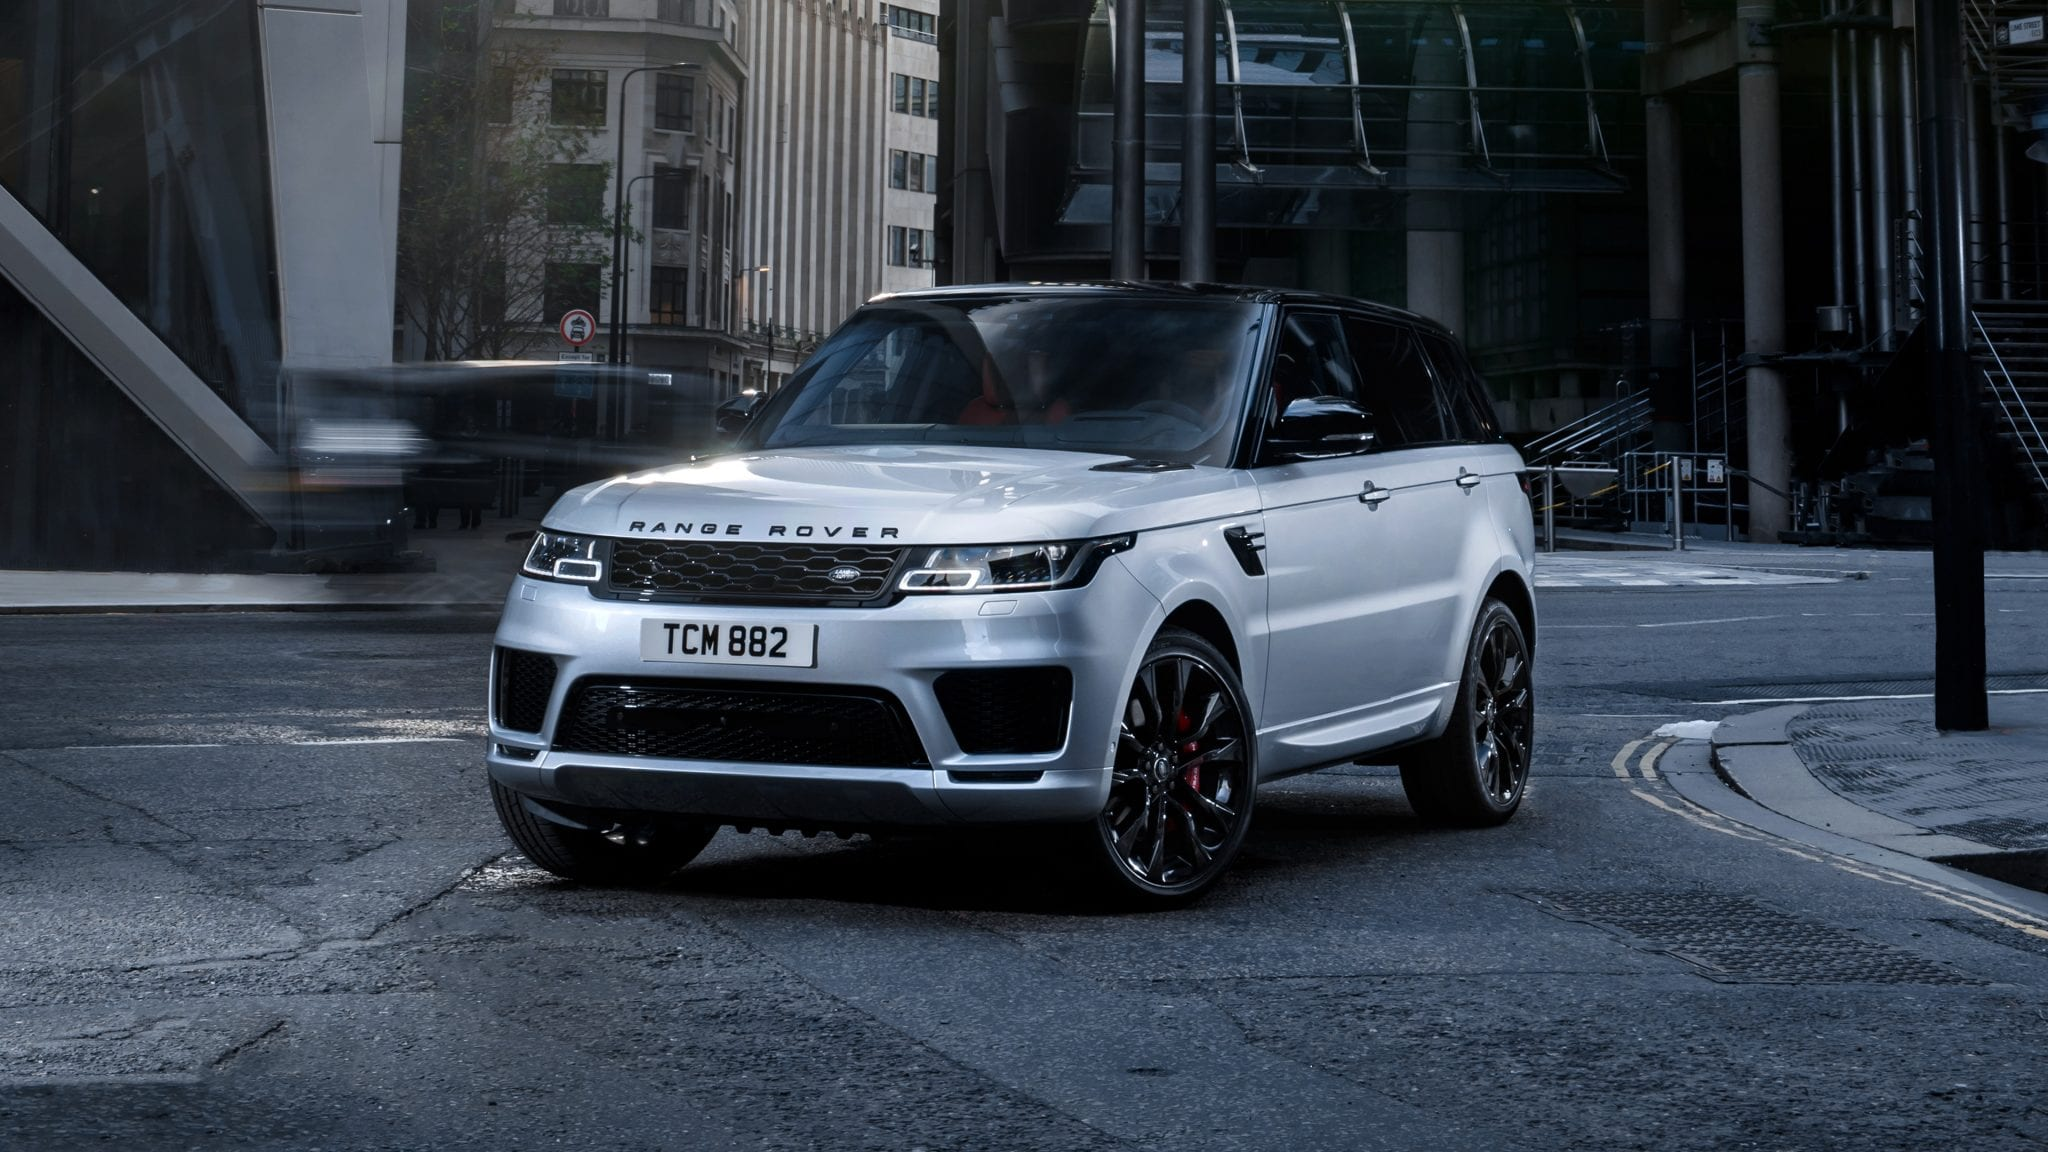 Land Rover Sales Figures - US Market